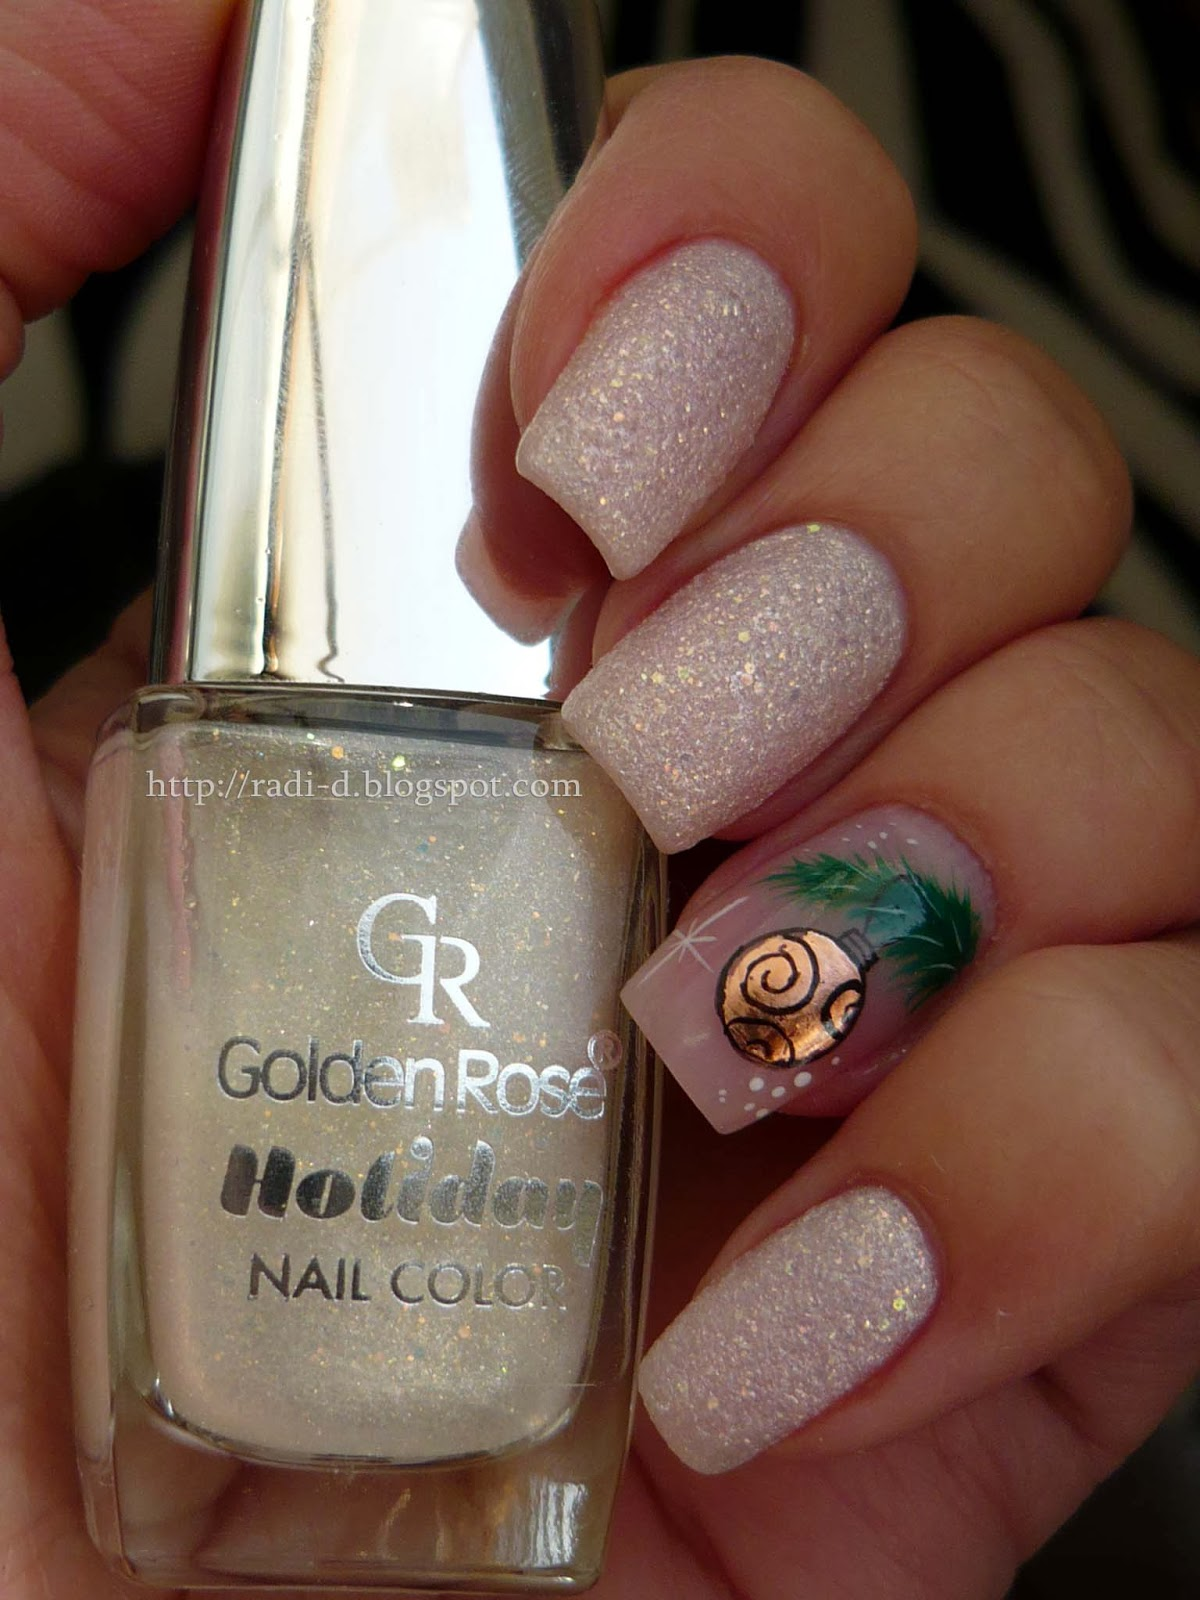 The christmas nail ornament - Golden Rose Holiday 70